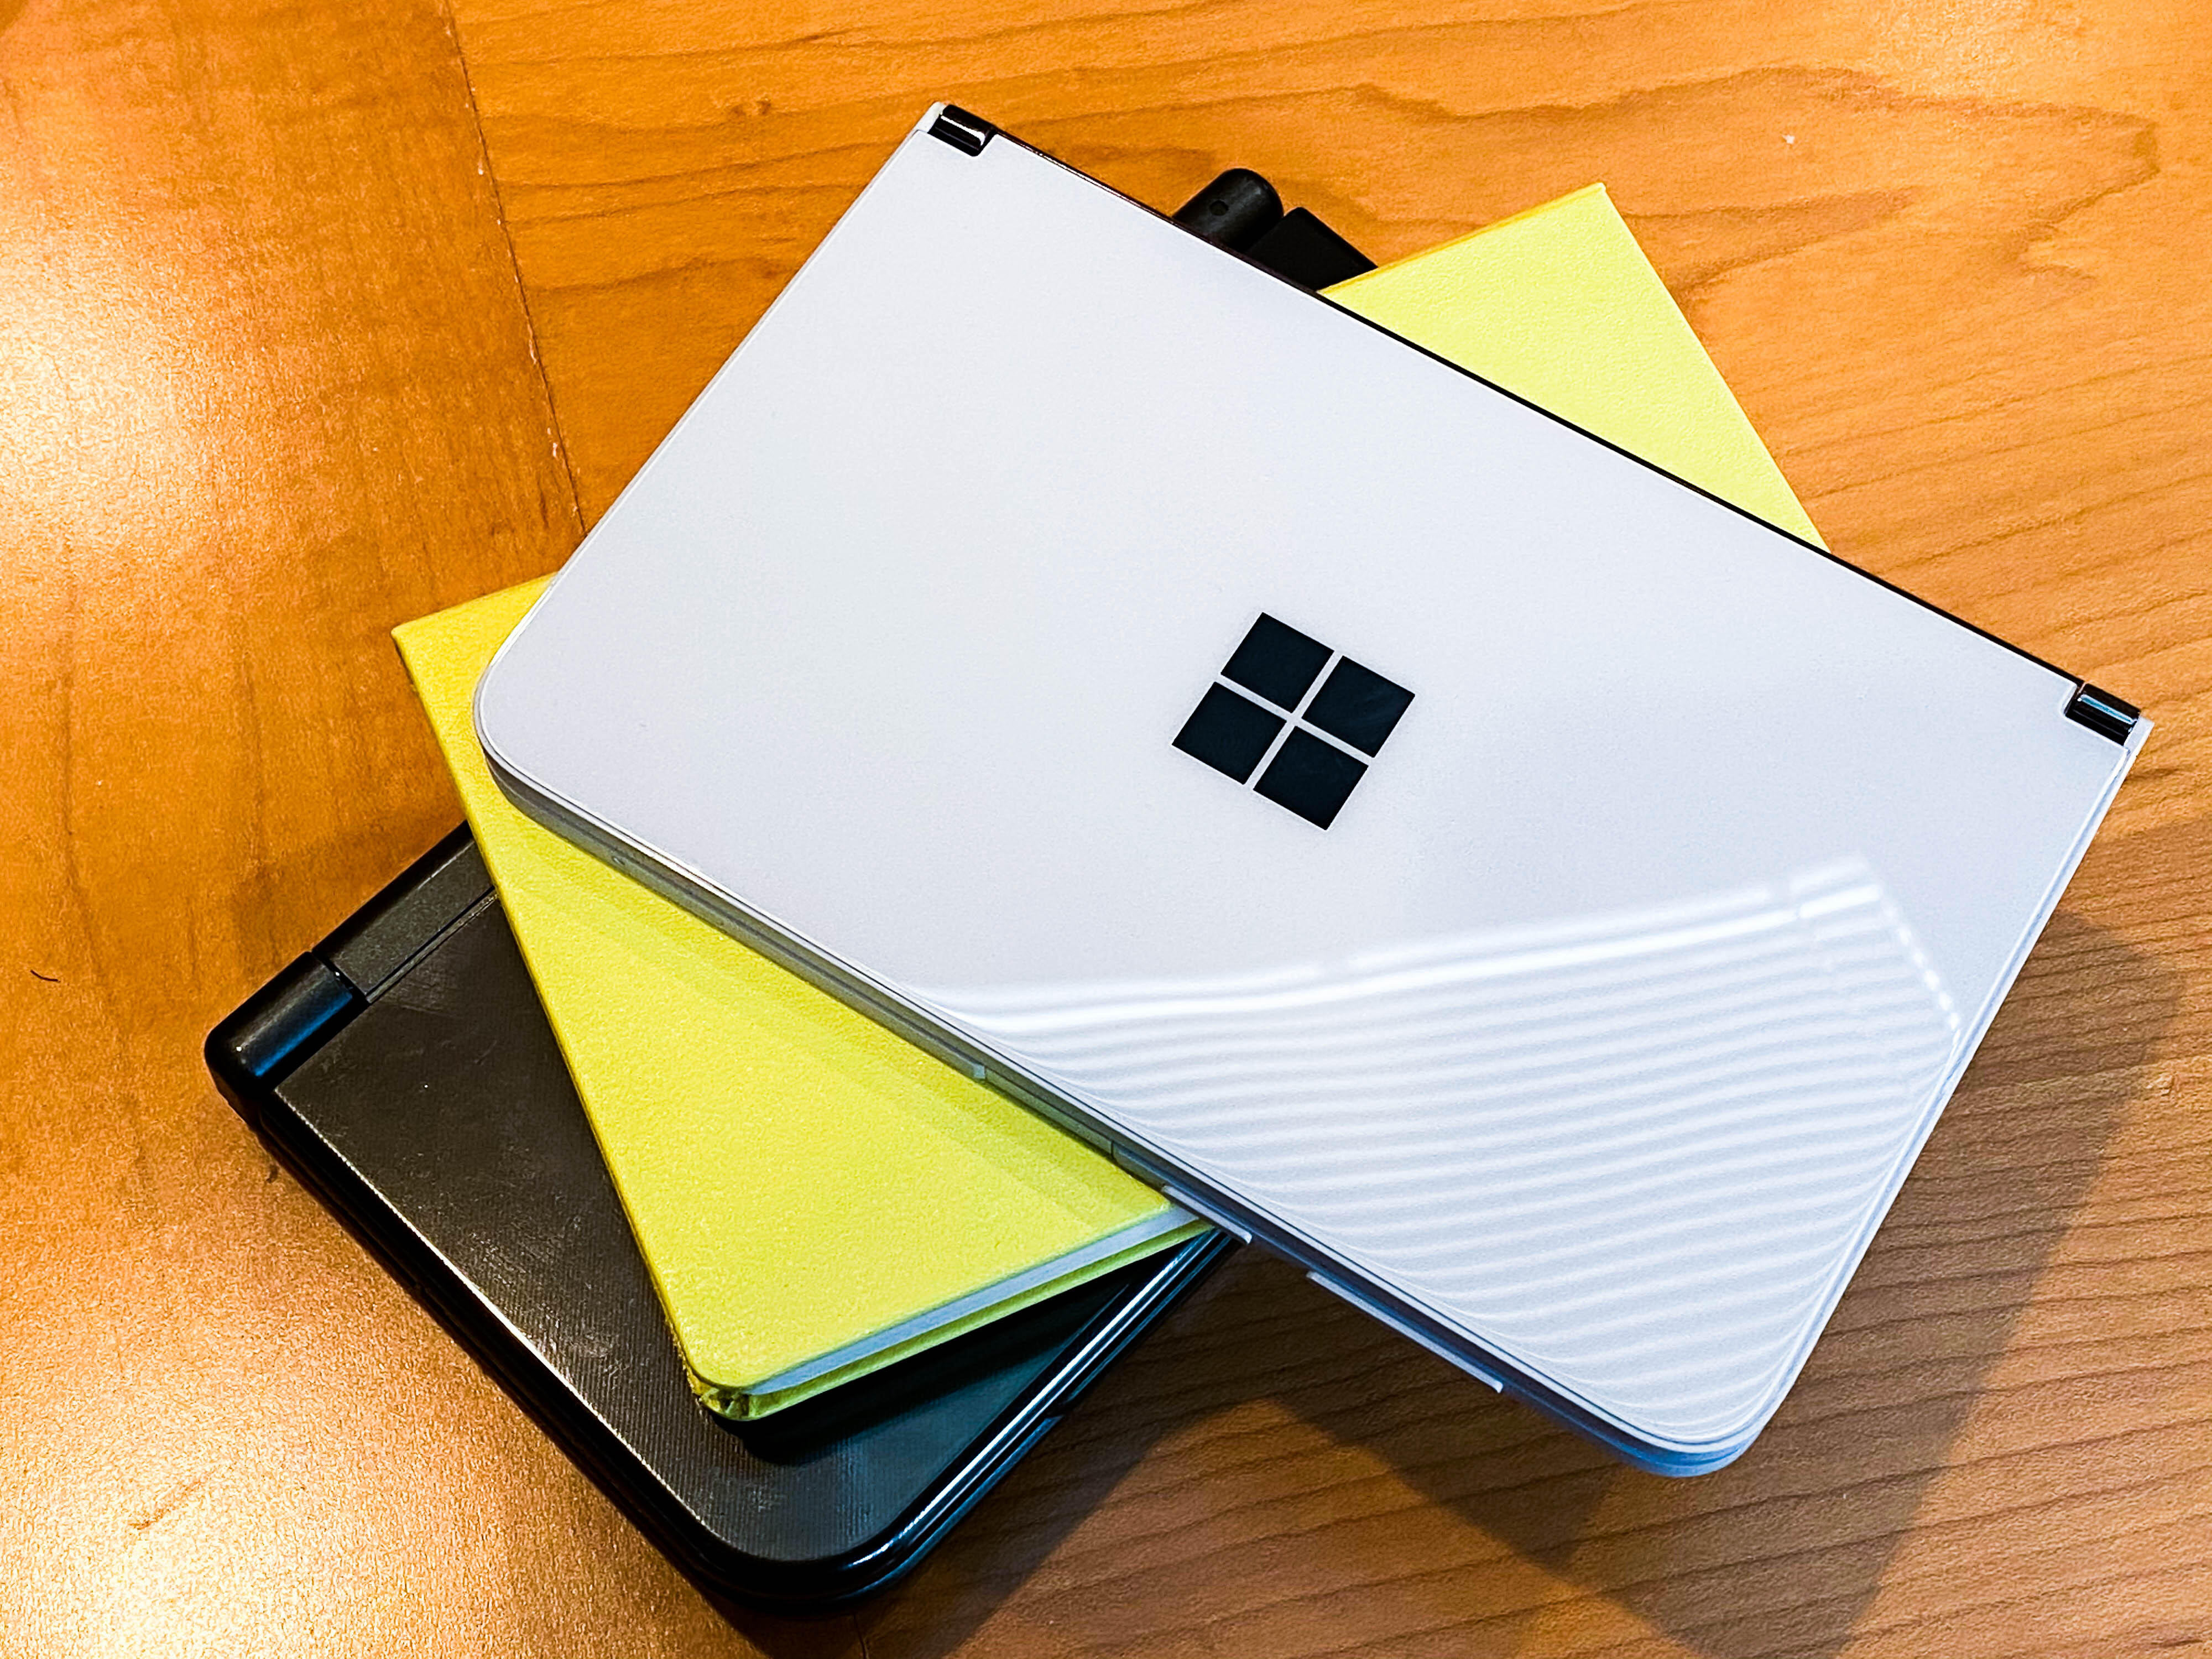 <p>Microsoft's rumored to be updating many of its Surface products, including its Duo phone.</p>